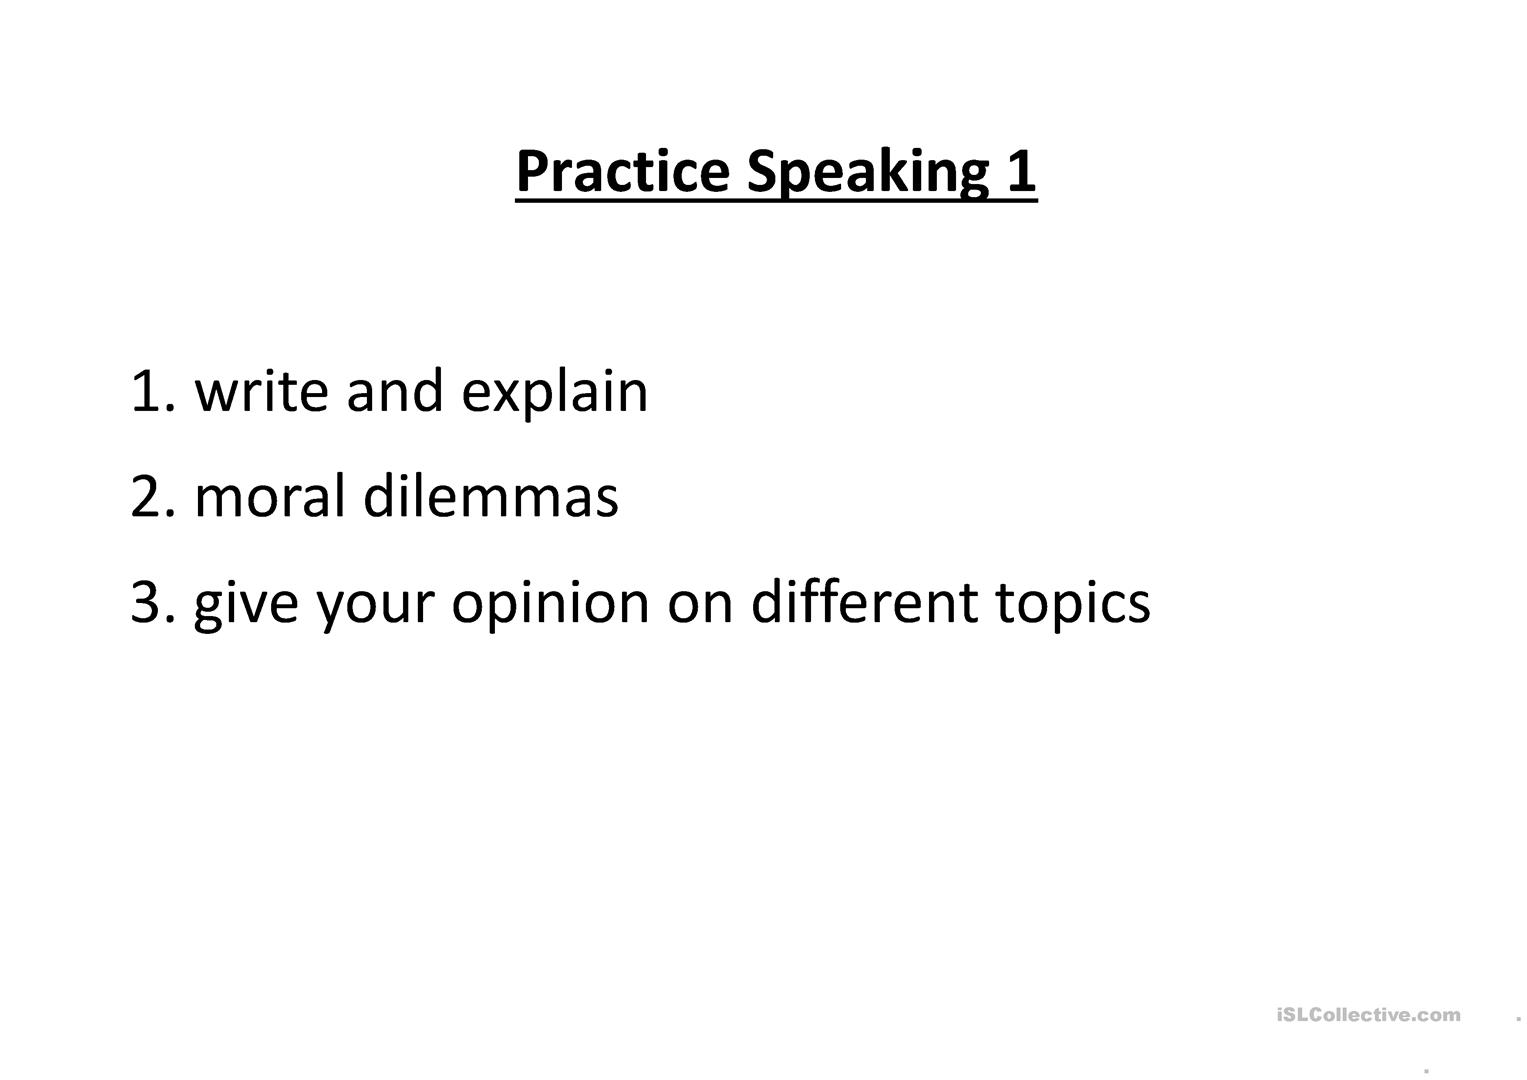 Practice Speaking Part 1 Worksheet